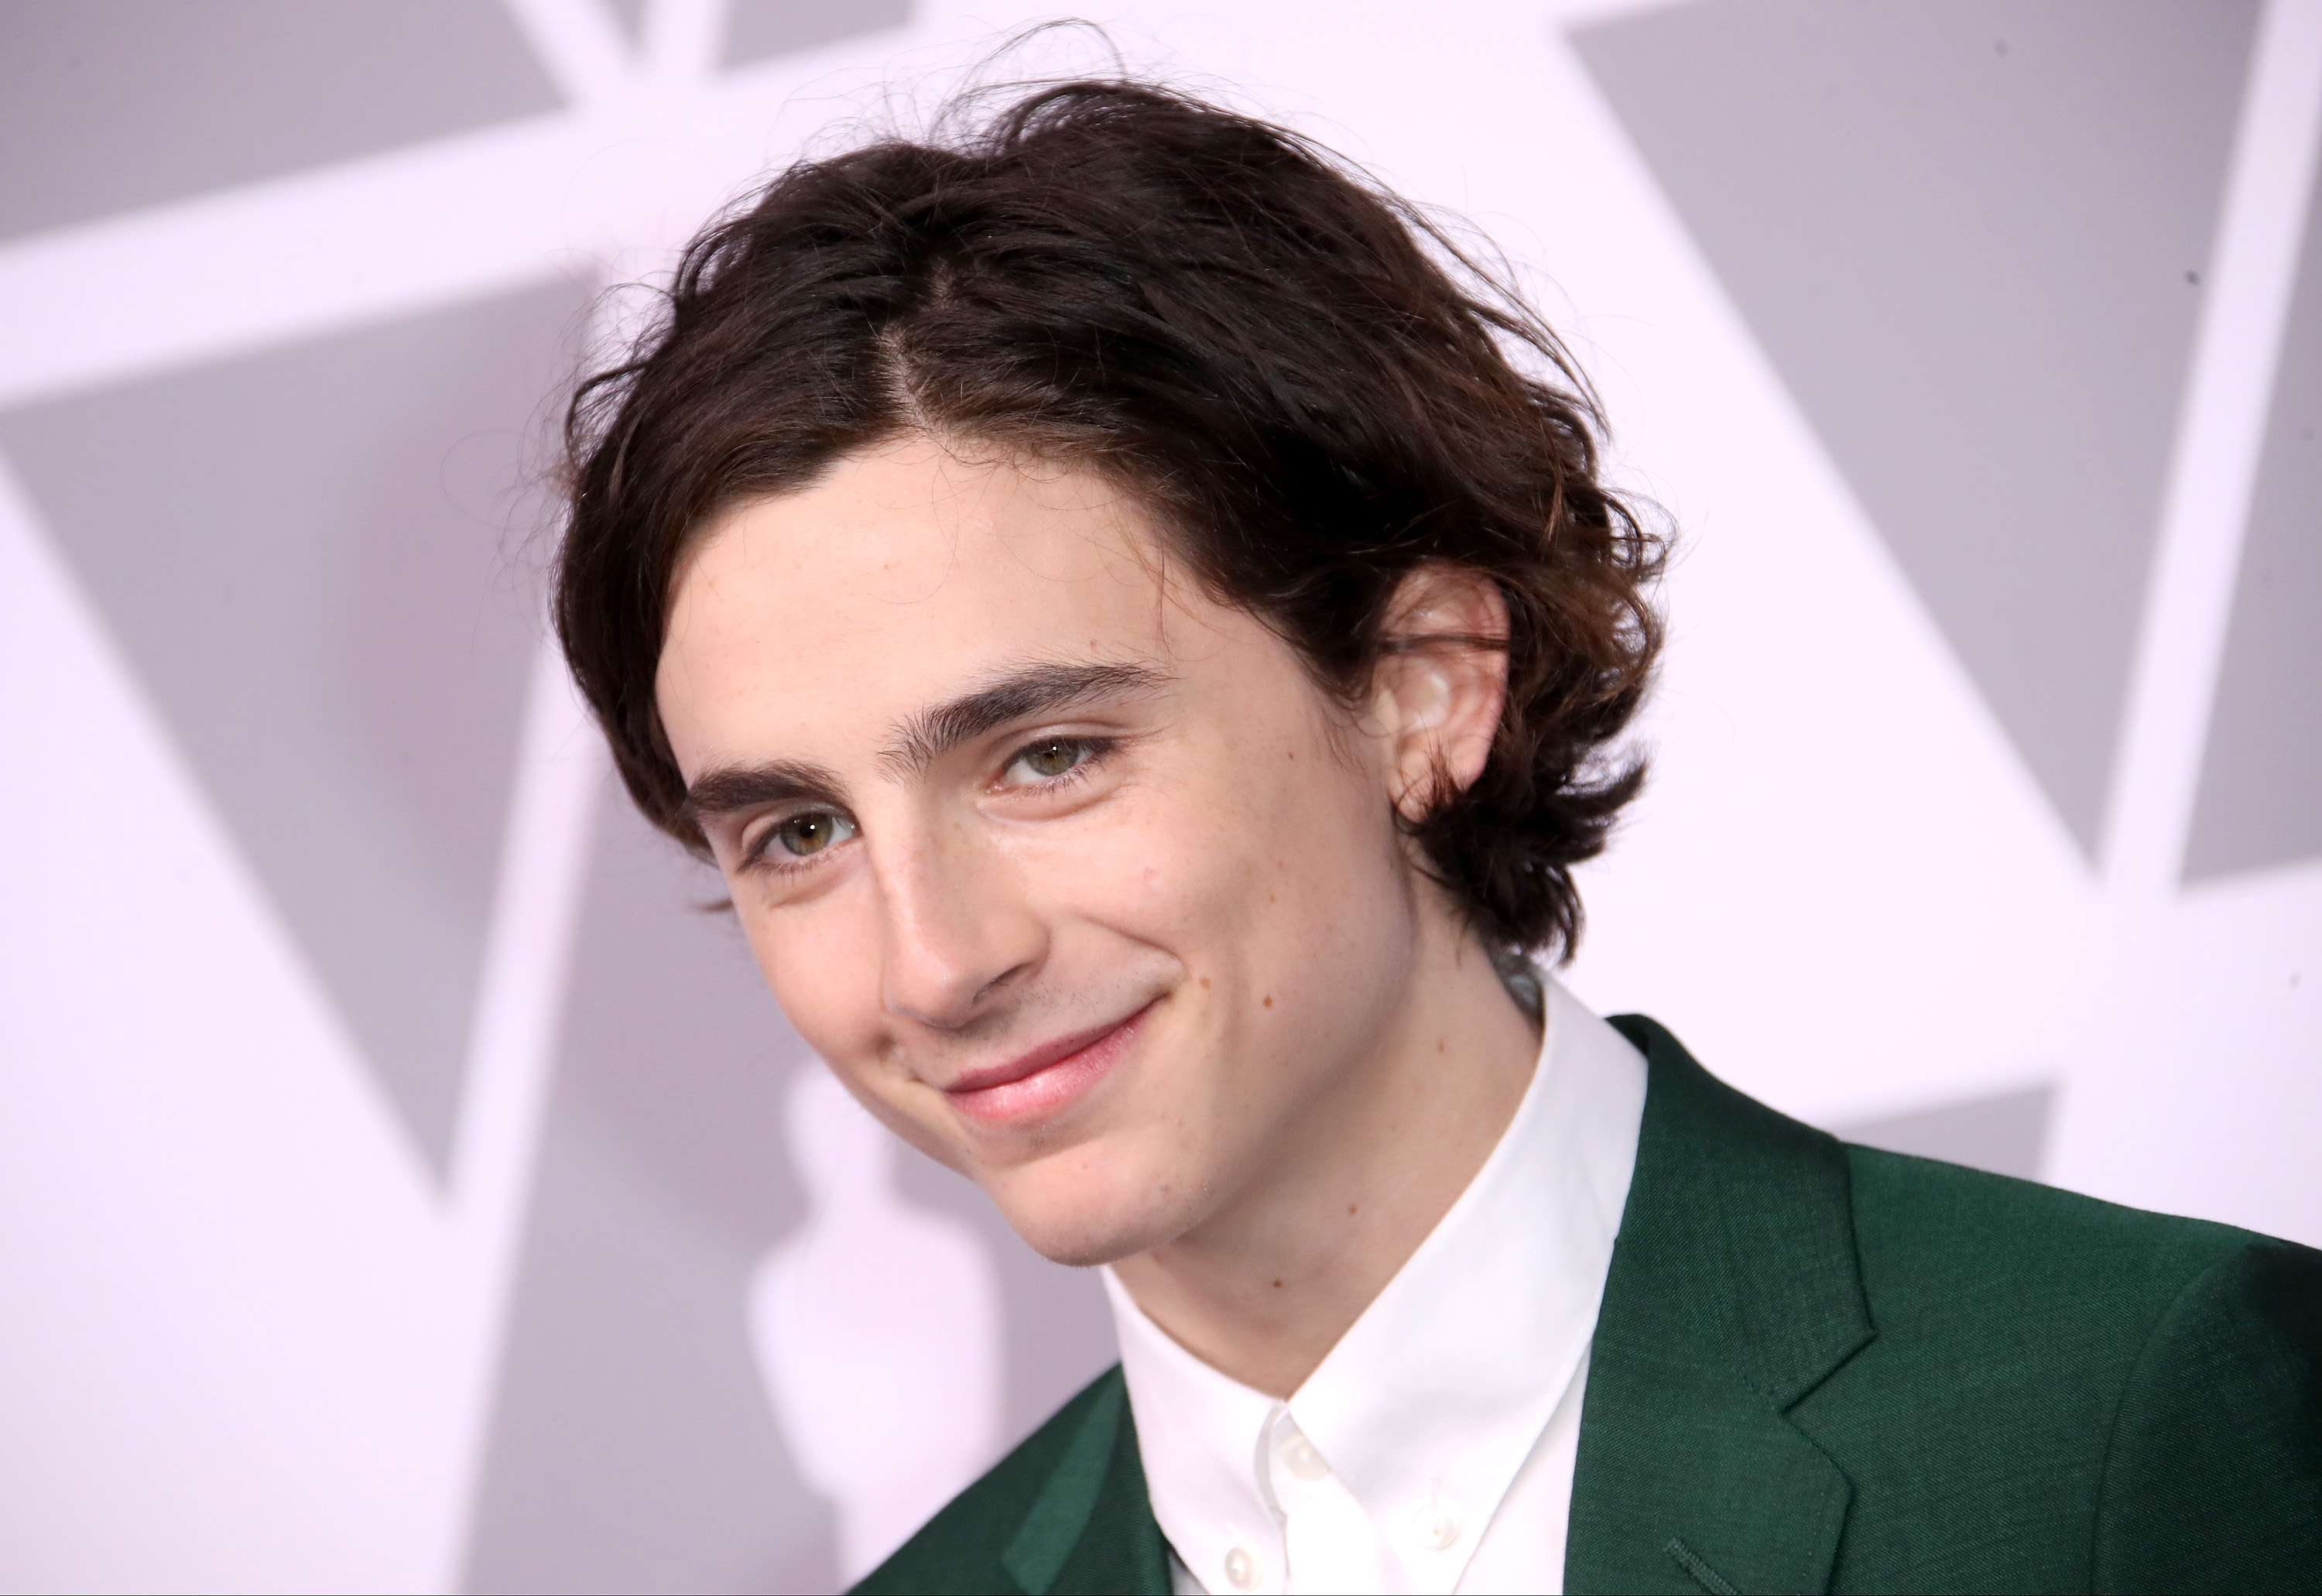 Actor Timothée Chalamet attends the 90th Annual Academy Awards Nominee Luncheon at The Beverly Hilton Hotel on February 5, 2018 in Beverly Hills, California.